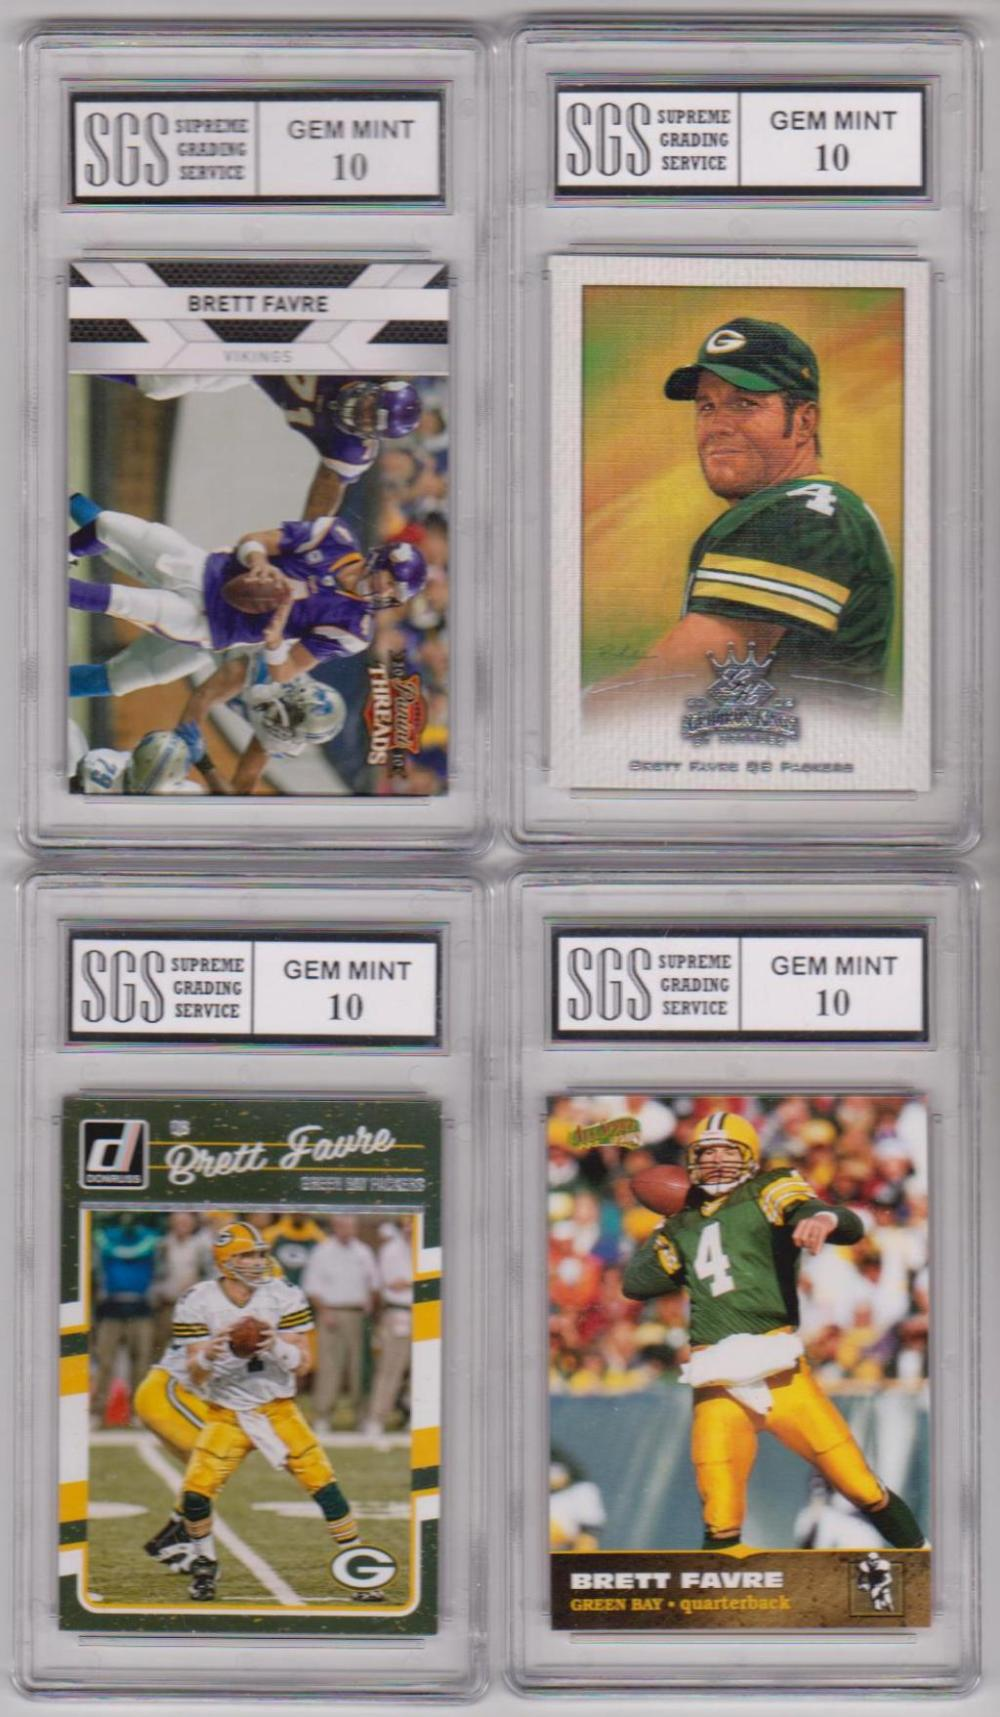 4 Different Graded Gem Mint 10 Brett Favre Cards